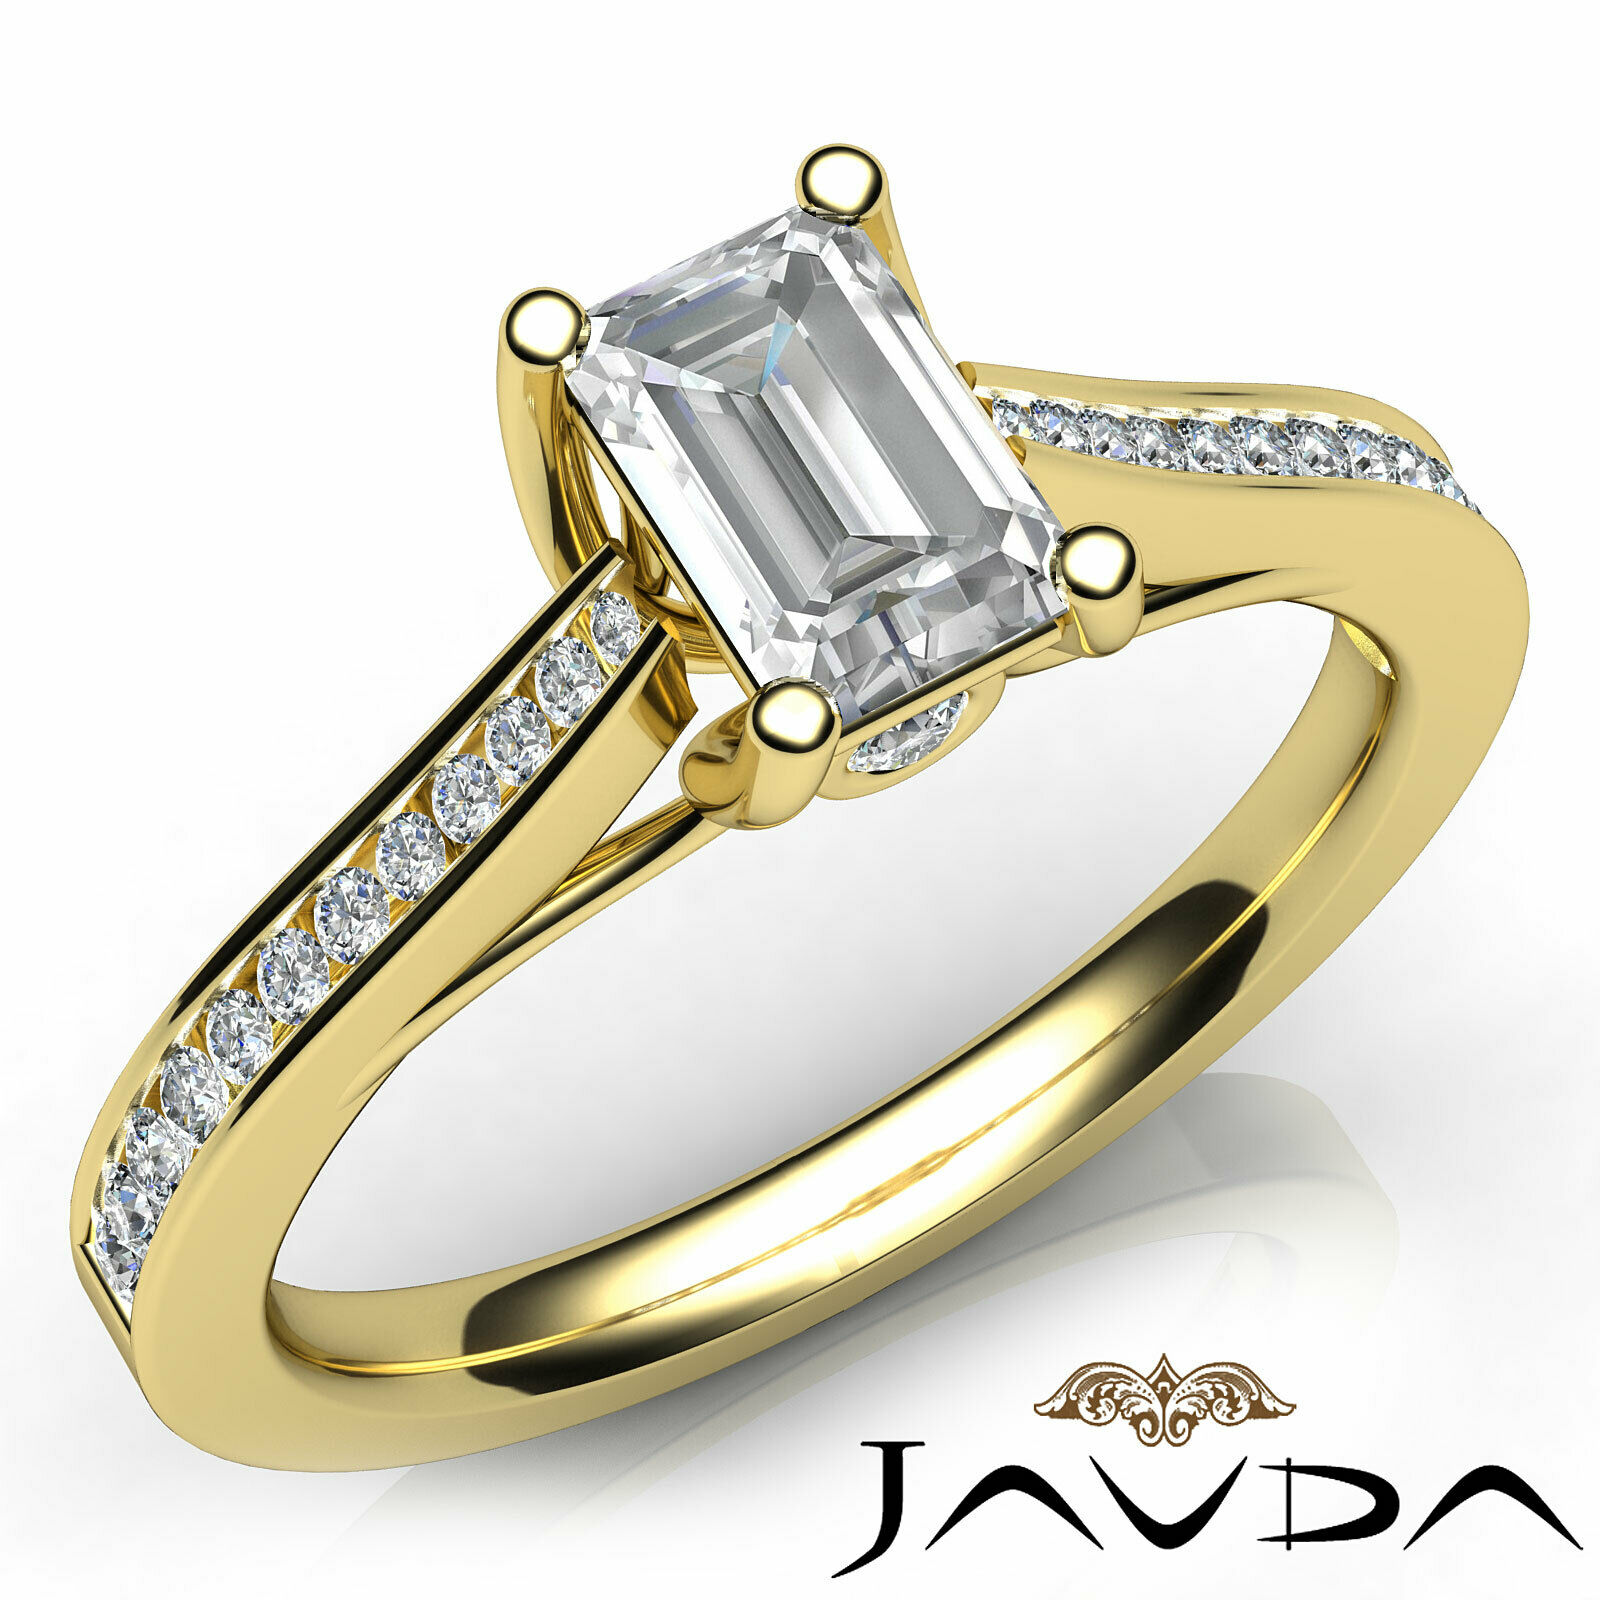 1Ctw Channel Set Emerald Diamond Engagement Her Ring Band GIA H-VVS1 White Gold 9